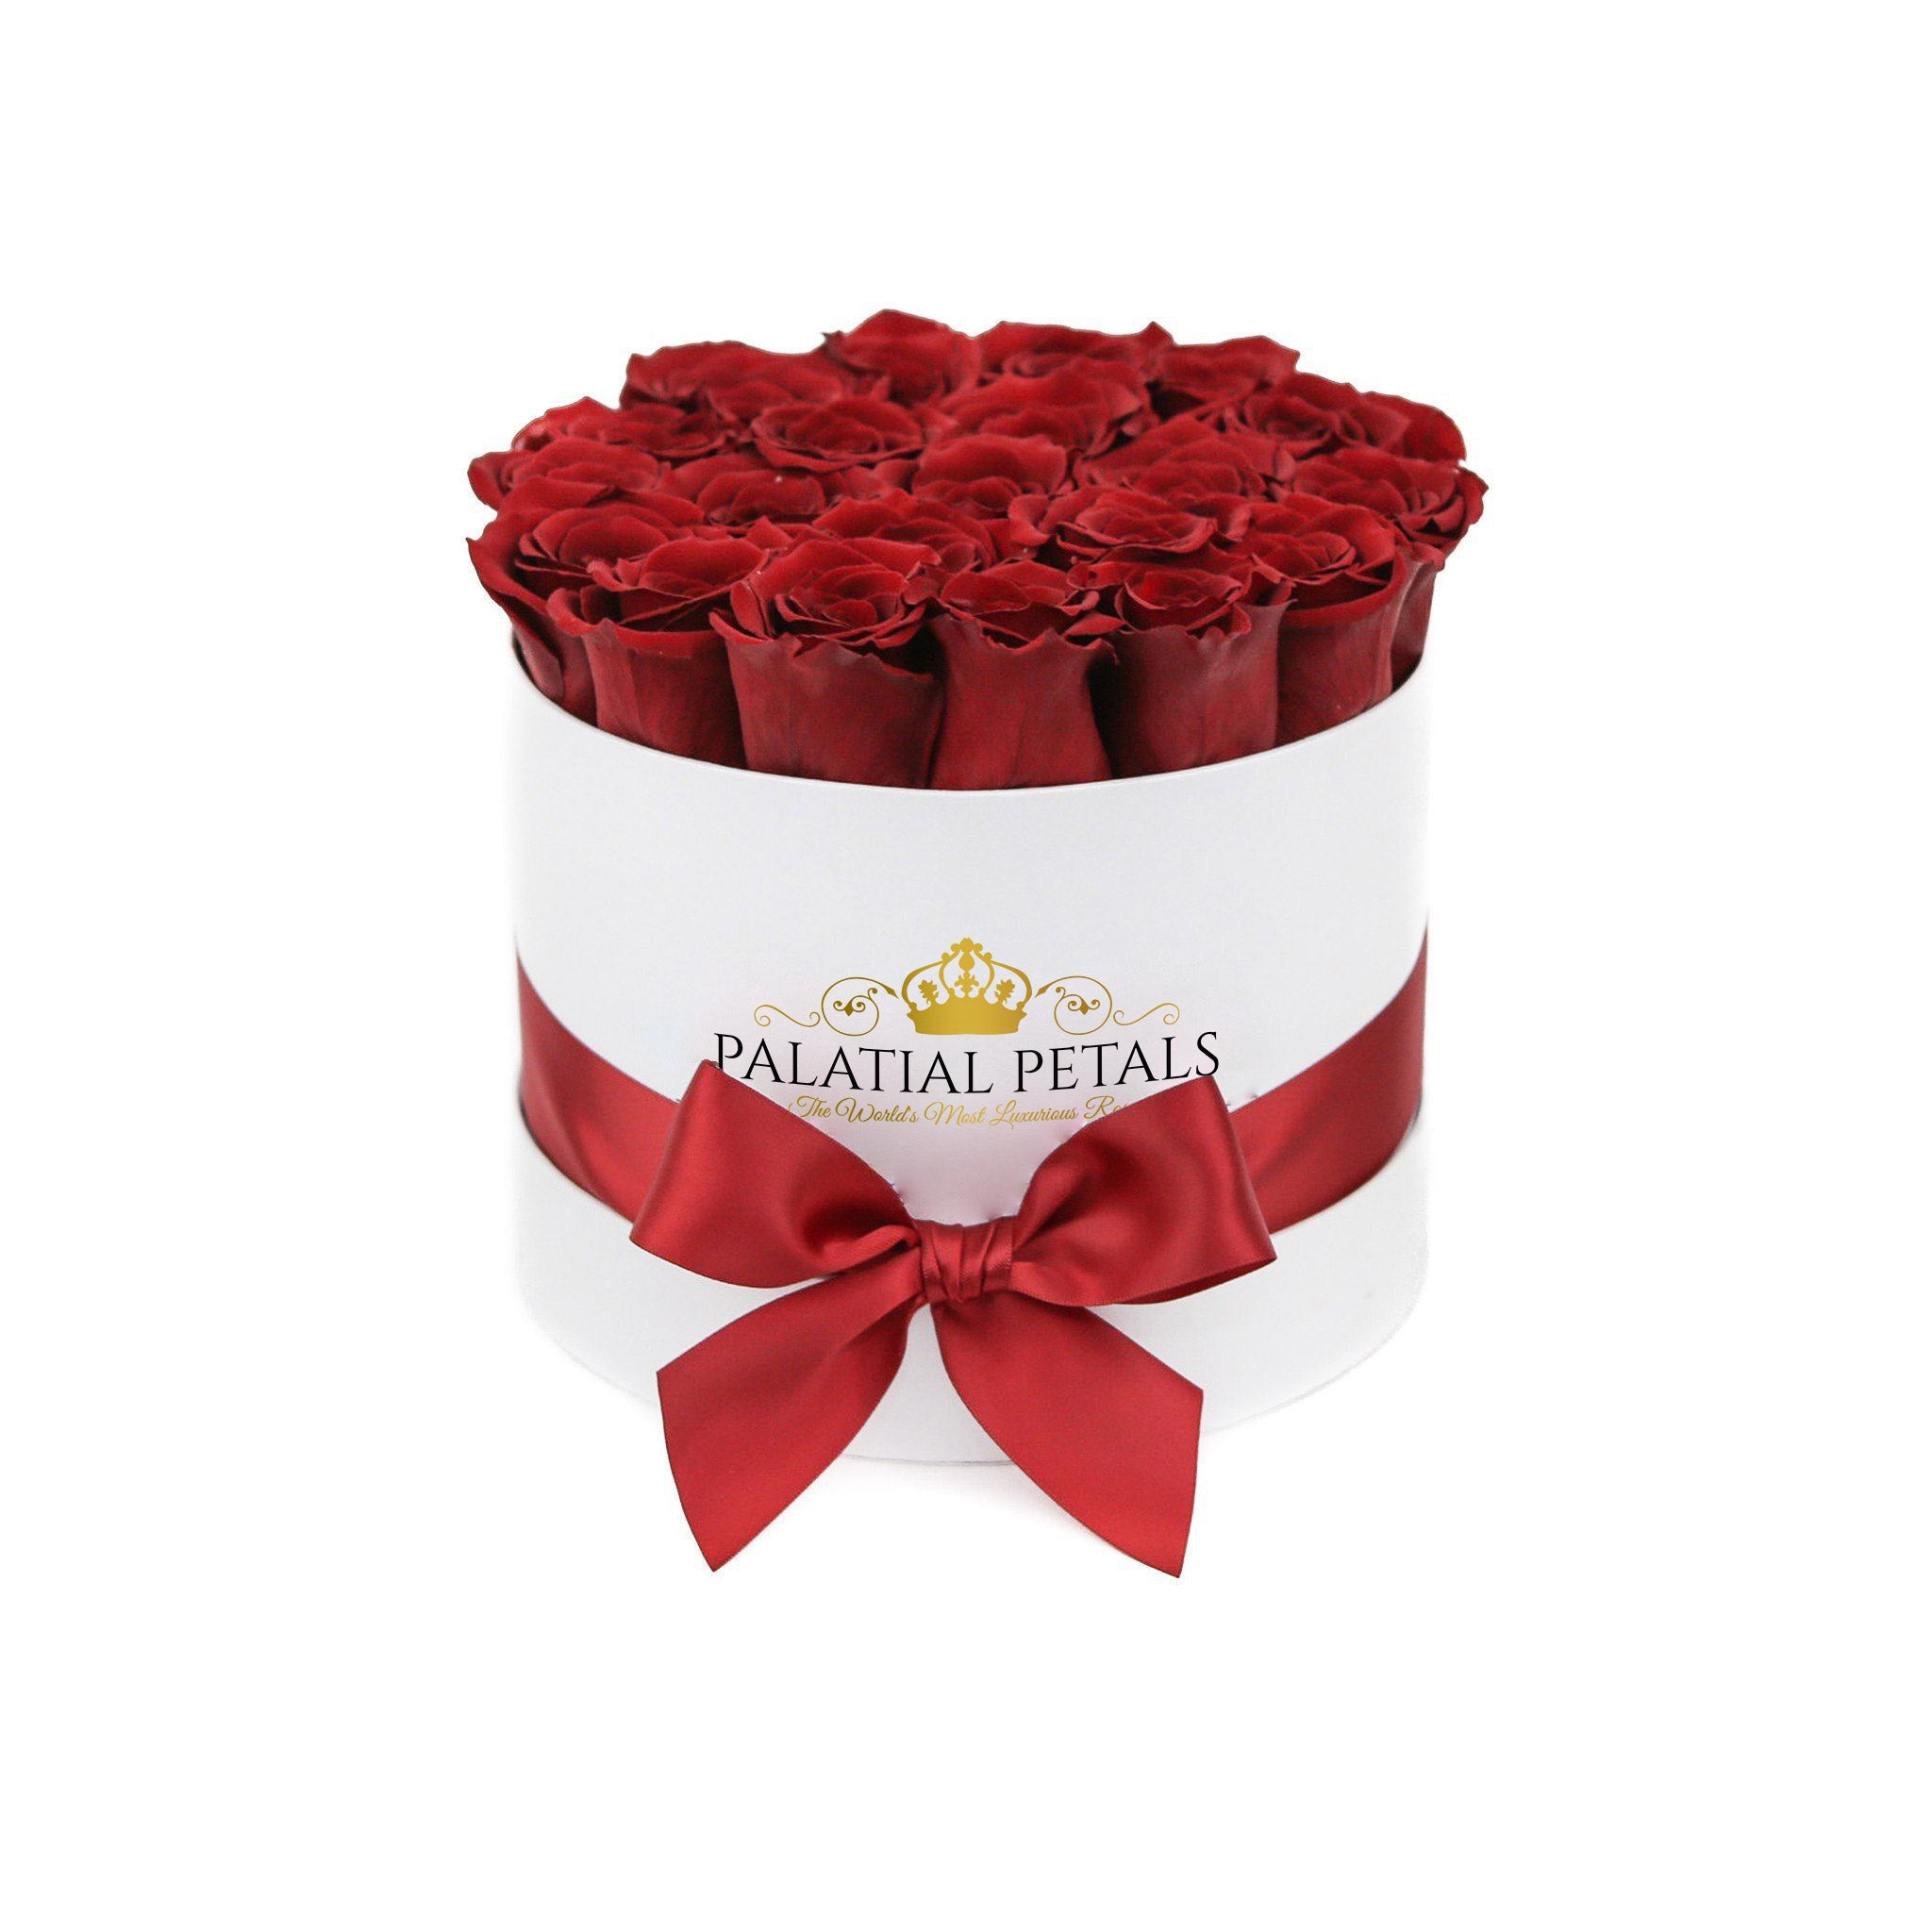 Louboutin Red Roses That Last A Year - Classic Rose Box